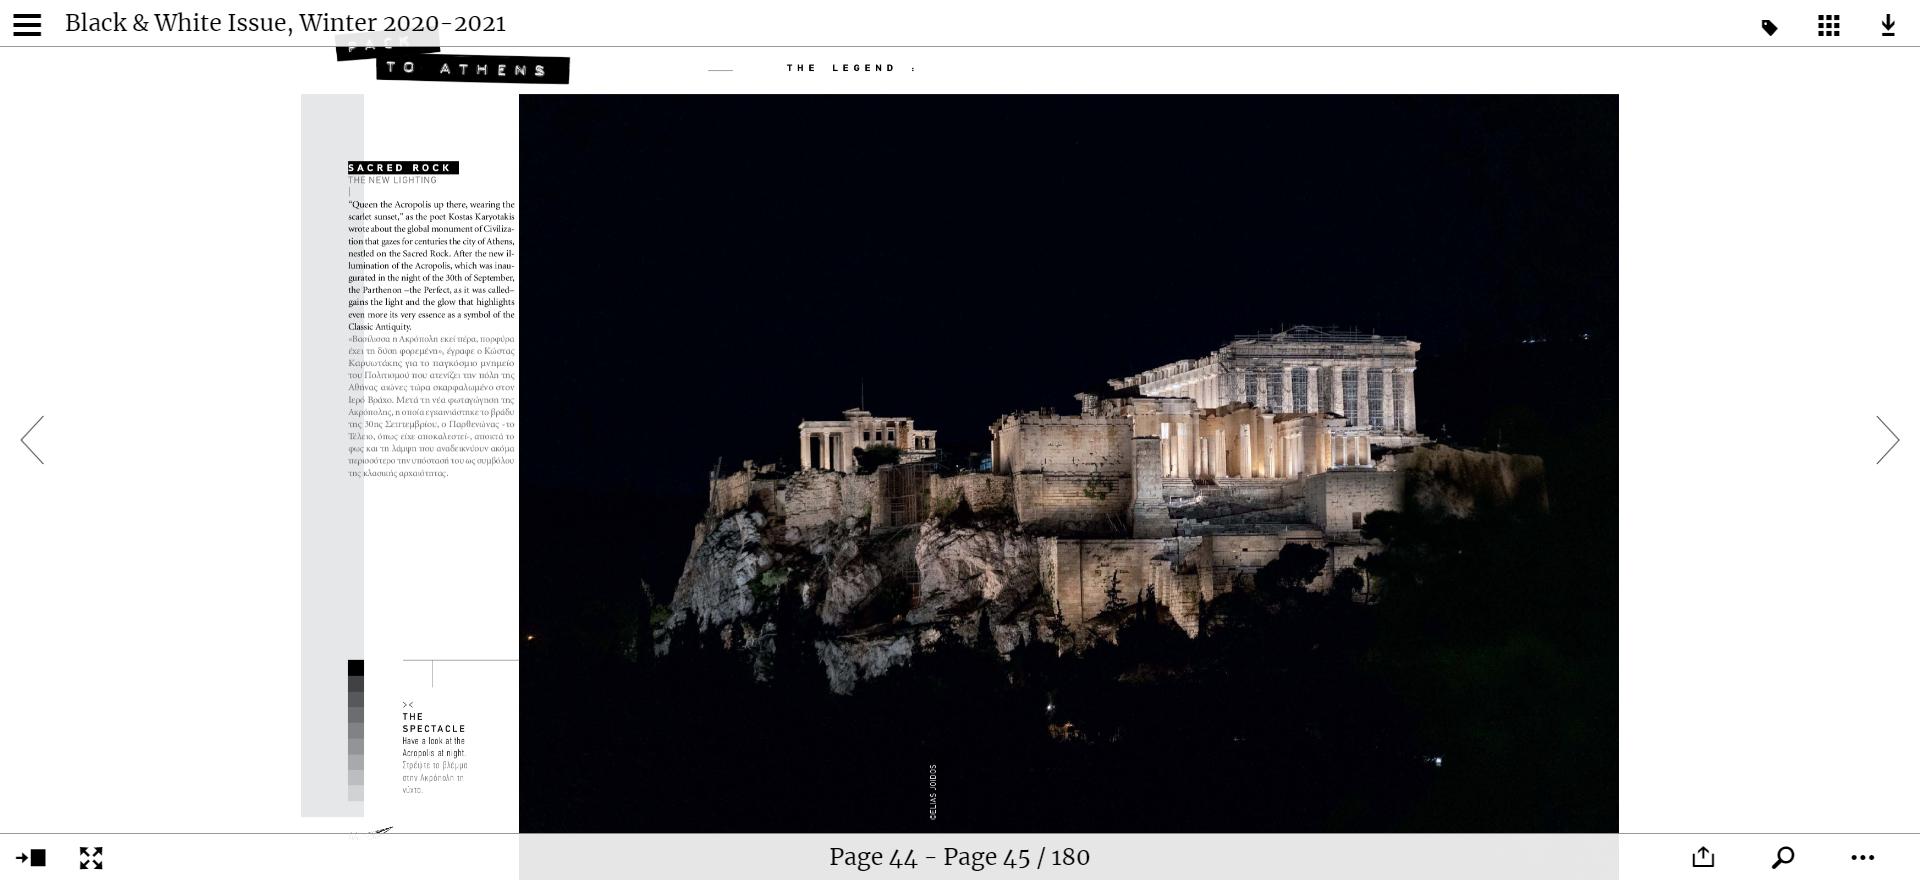 2 board the legend magazine acropolis of athens